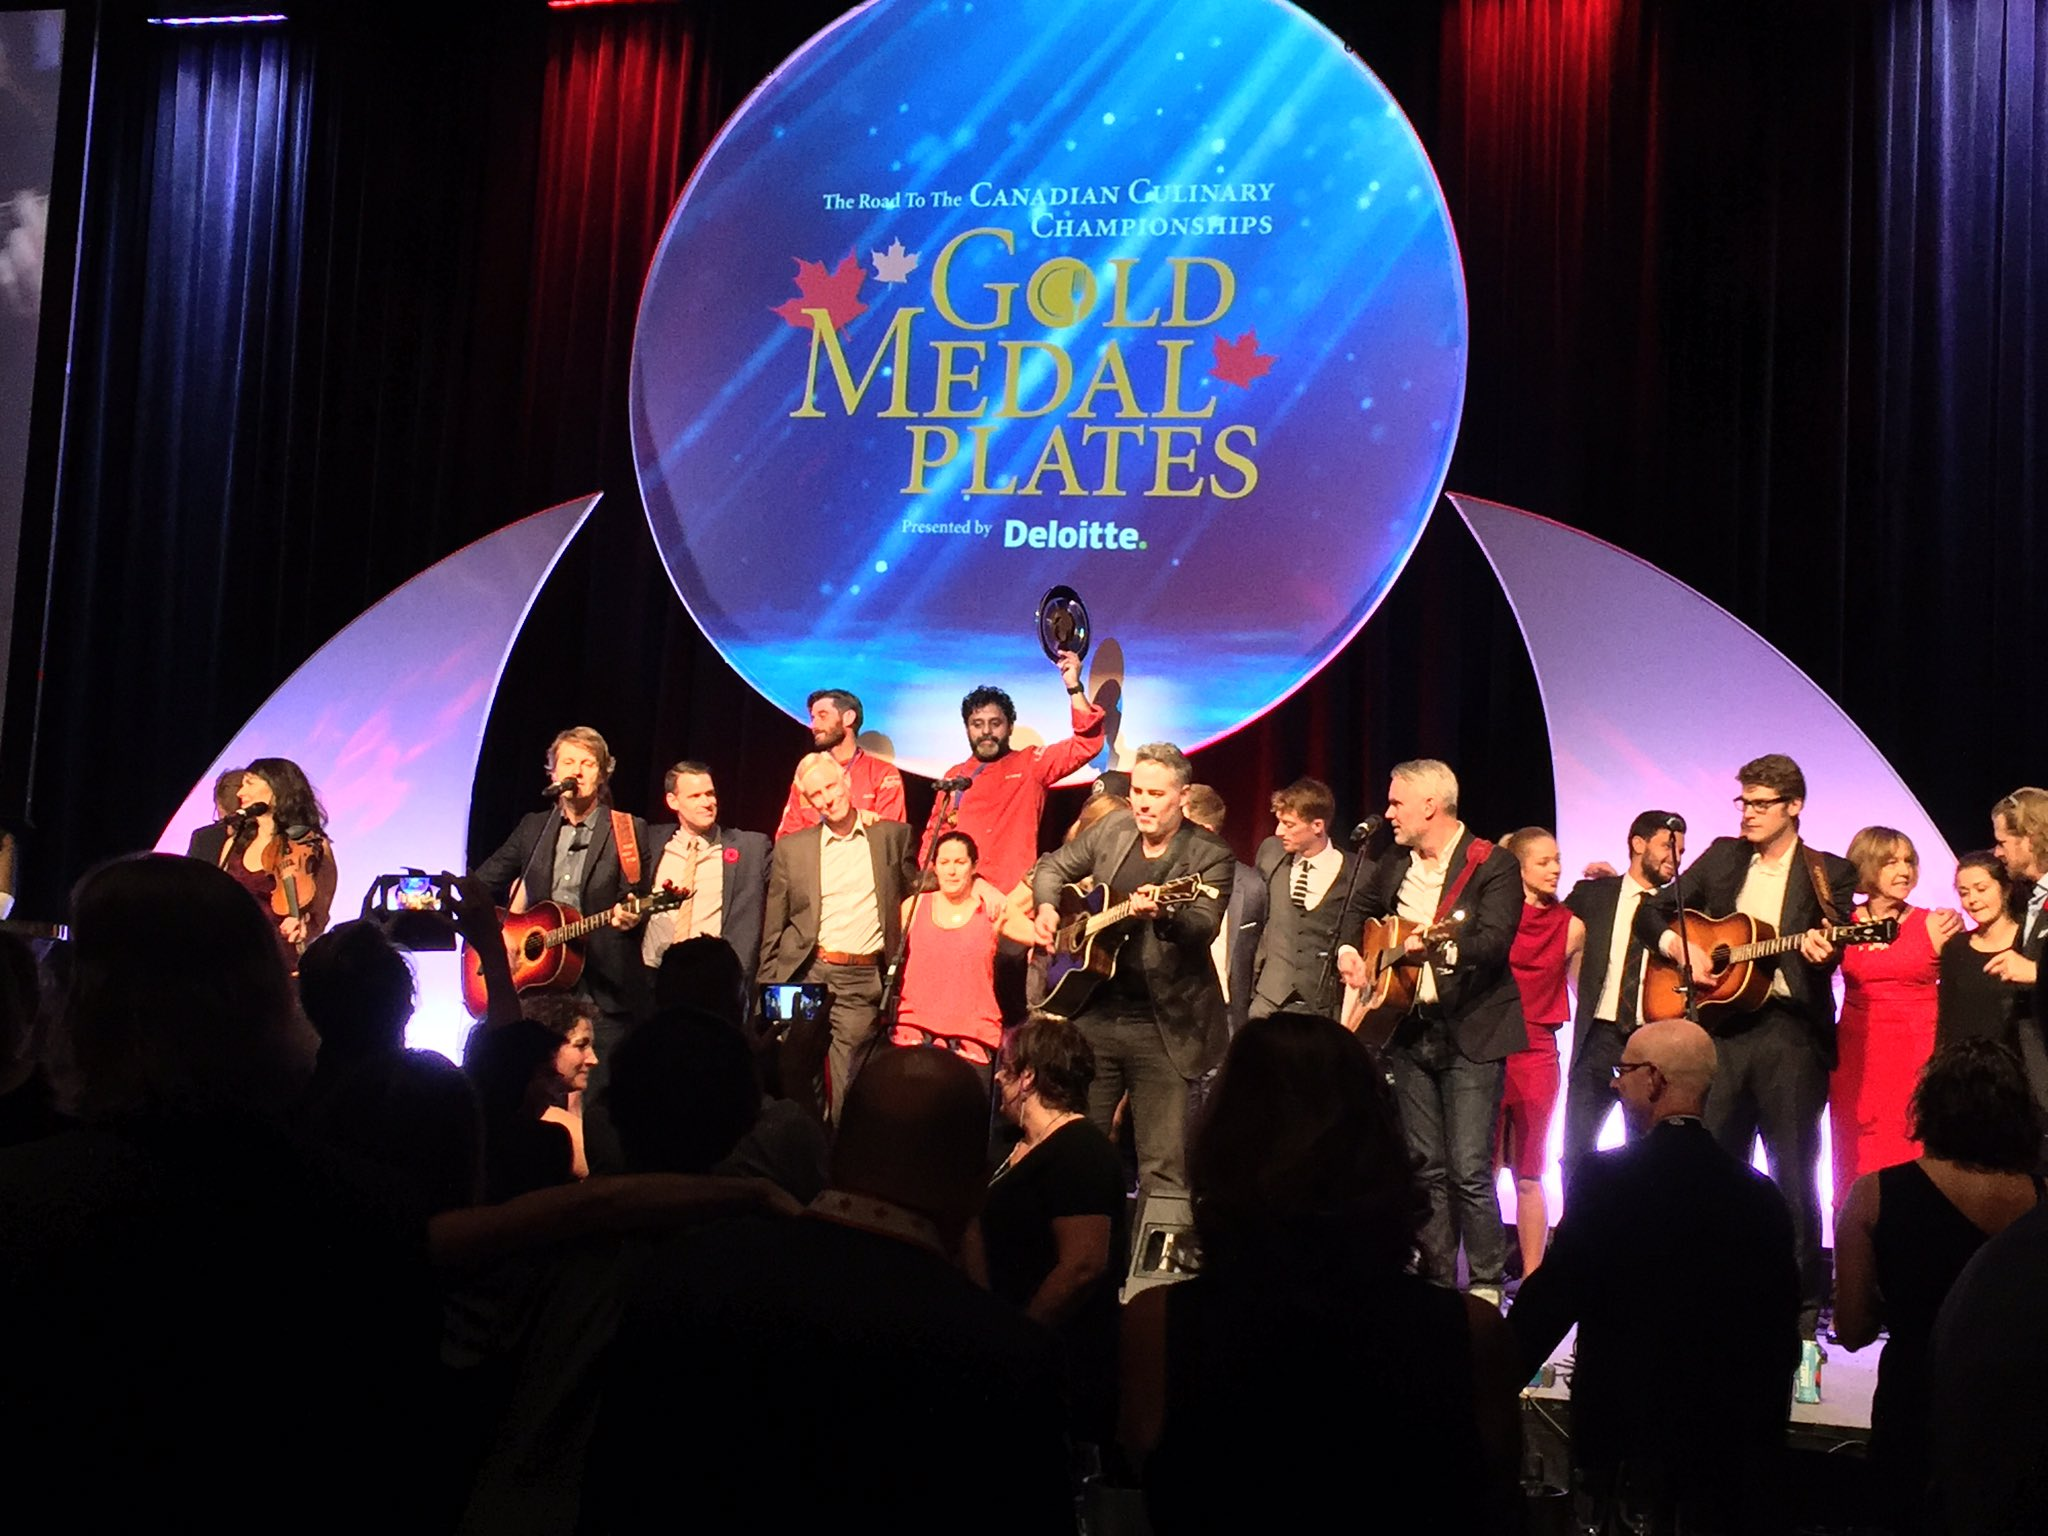 Fun night #goldmedalplates in Ottawa! #myGMP https://t.co/Y7hBXeIlC2